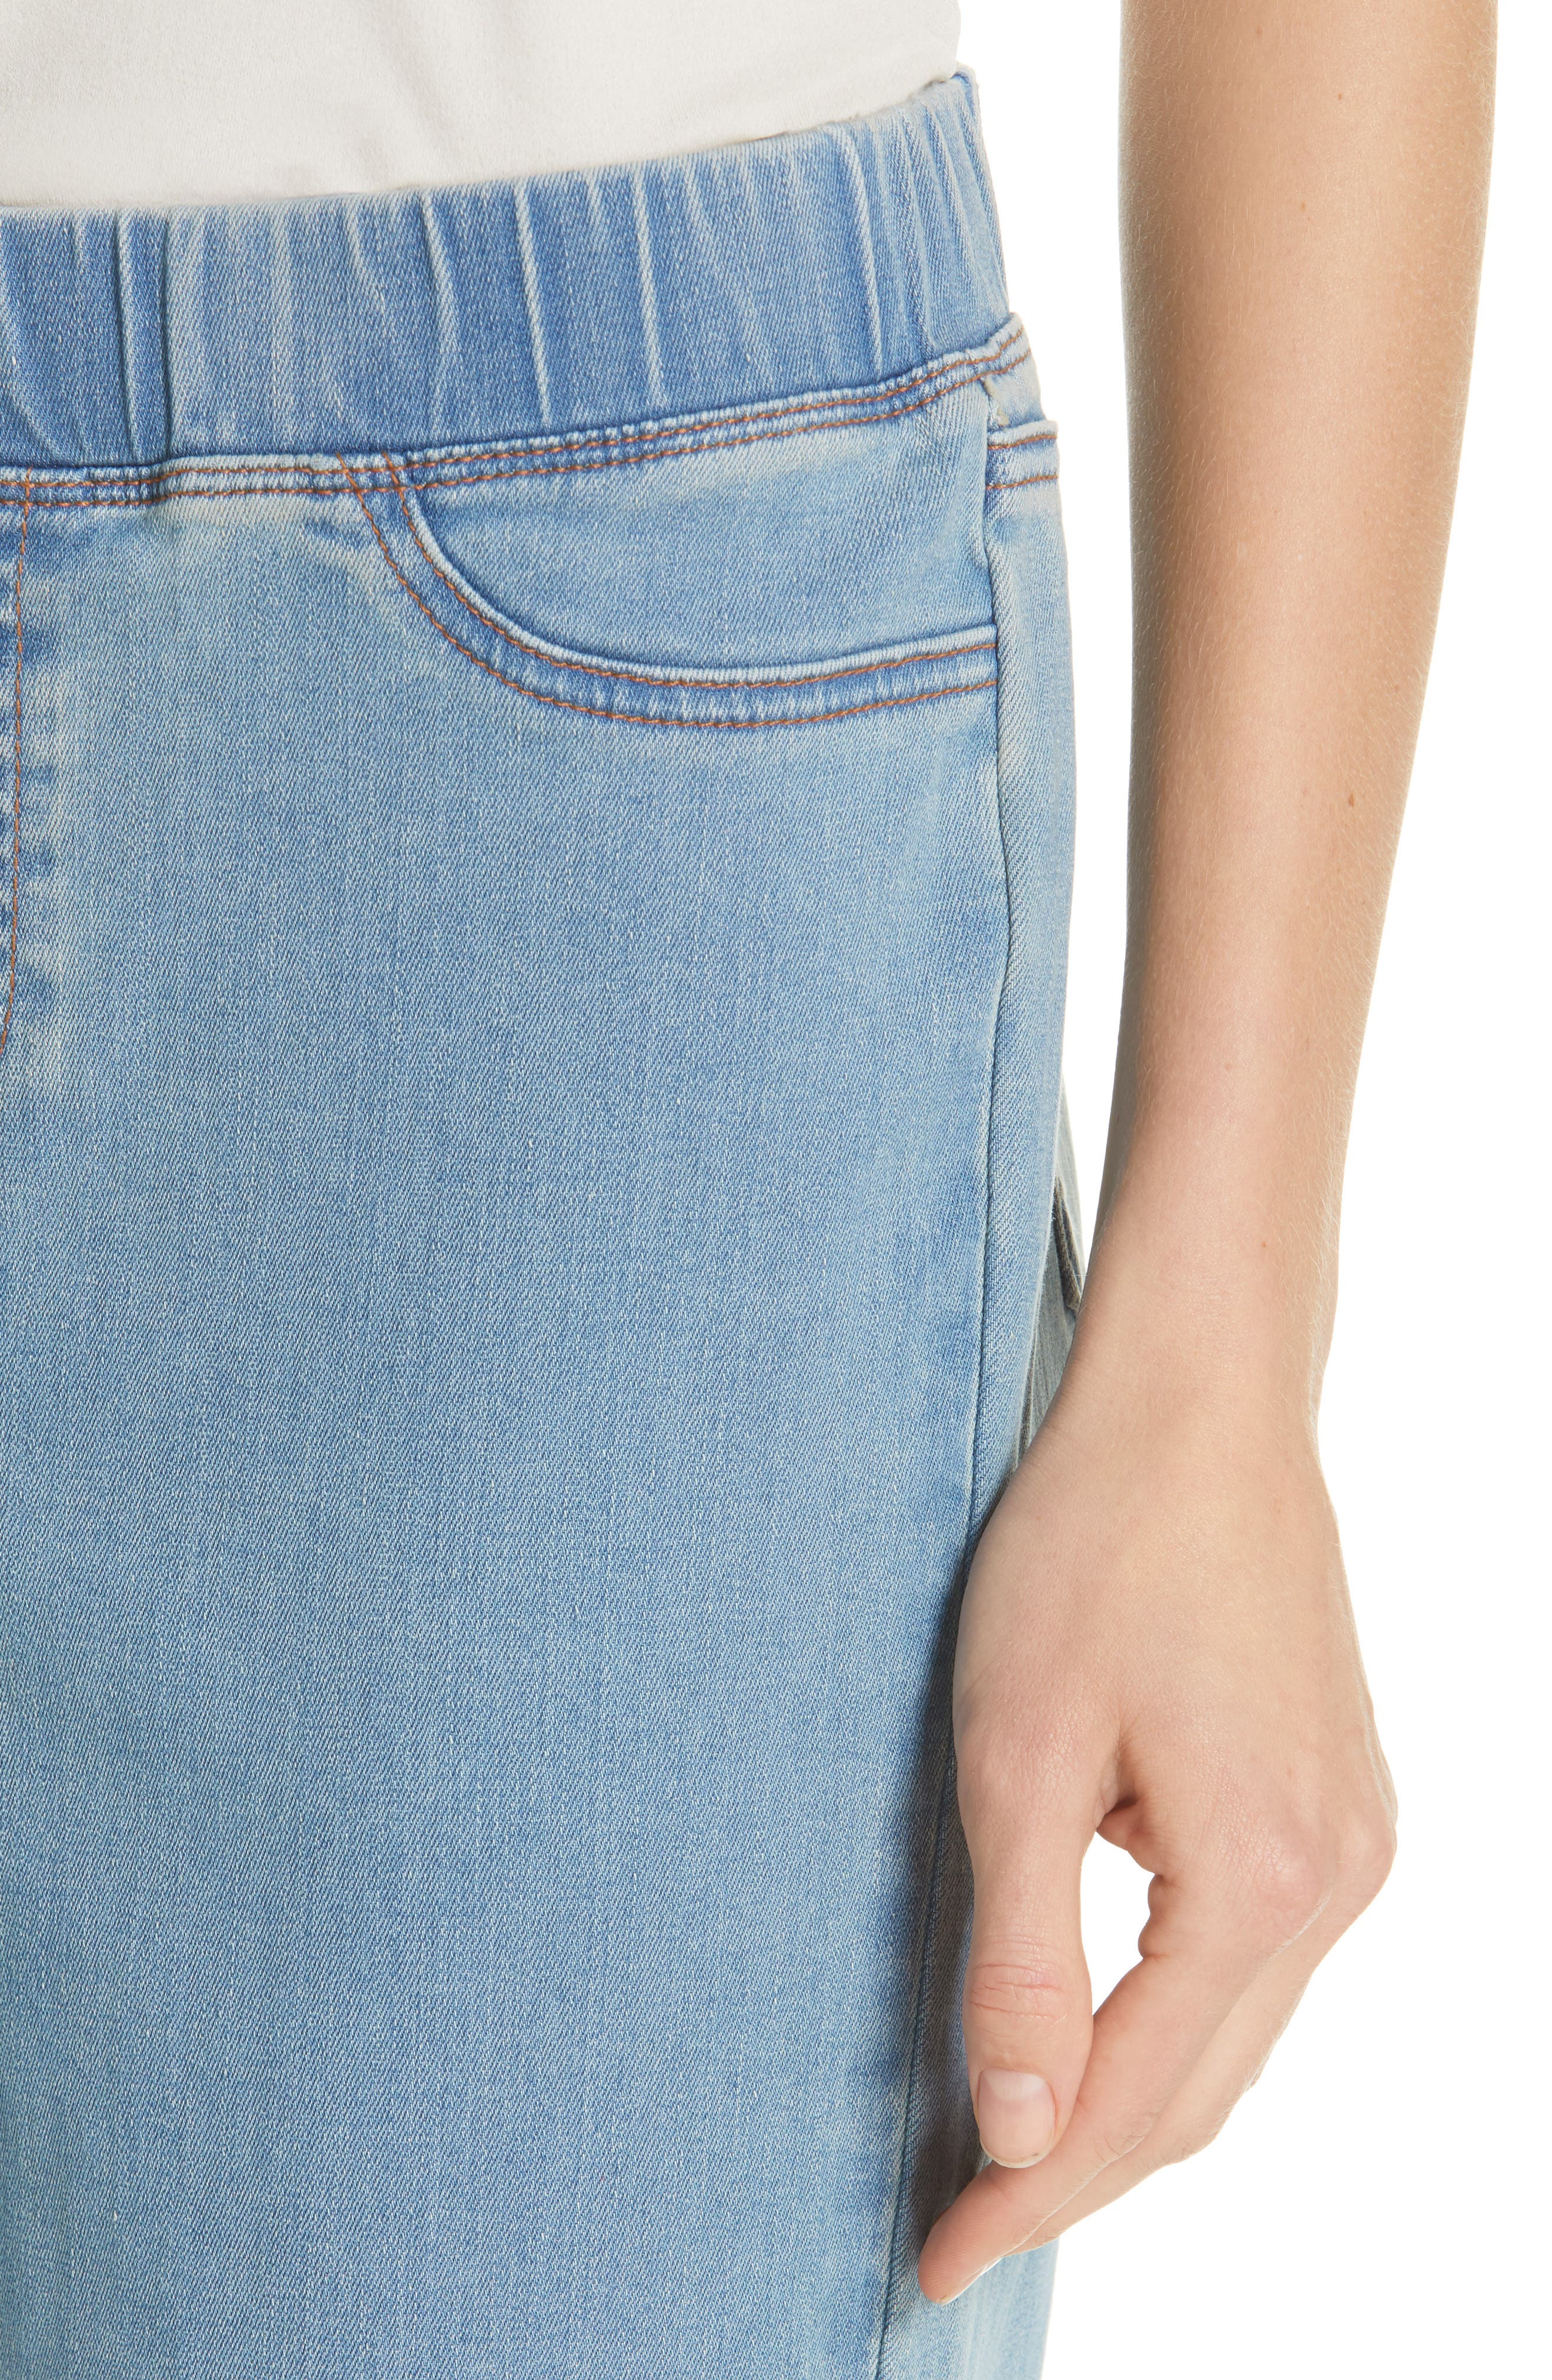 EILEEN FISHER, Frayed Hem Pull-On Ankle Jeans, Alternate thumbnail 5, color, FROST